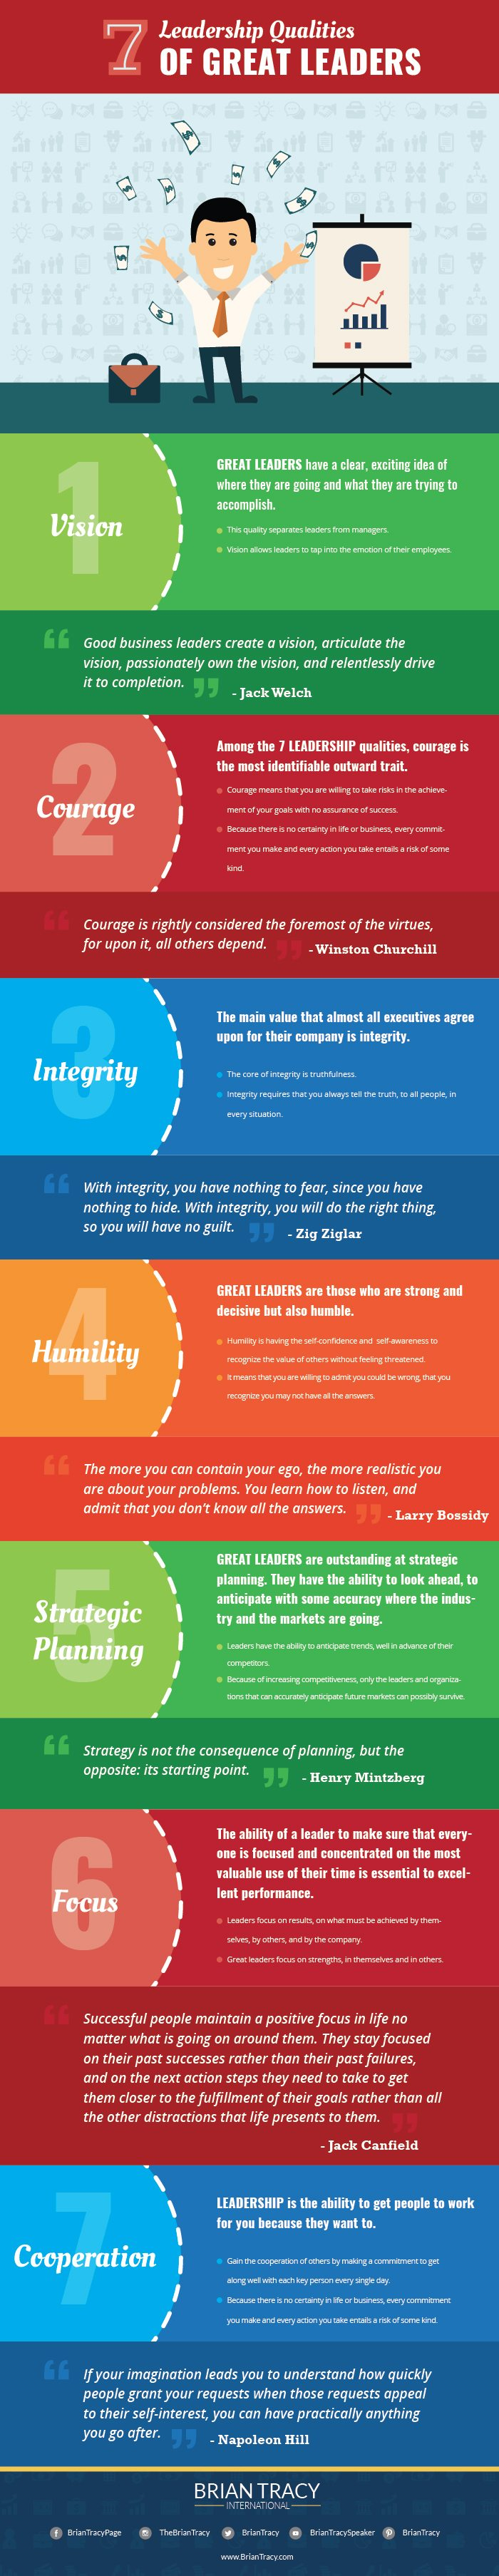 Leadership Qualities  Characteristics Of Good Leaders  Brian Tracy  Leadership Qualities Of Great Leaders Infographic What Is A Thesis Statement In A Essay also Thesis For A Persuasive Essay  Thesis Statement For Process Essay